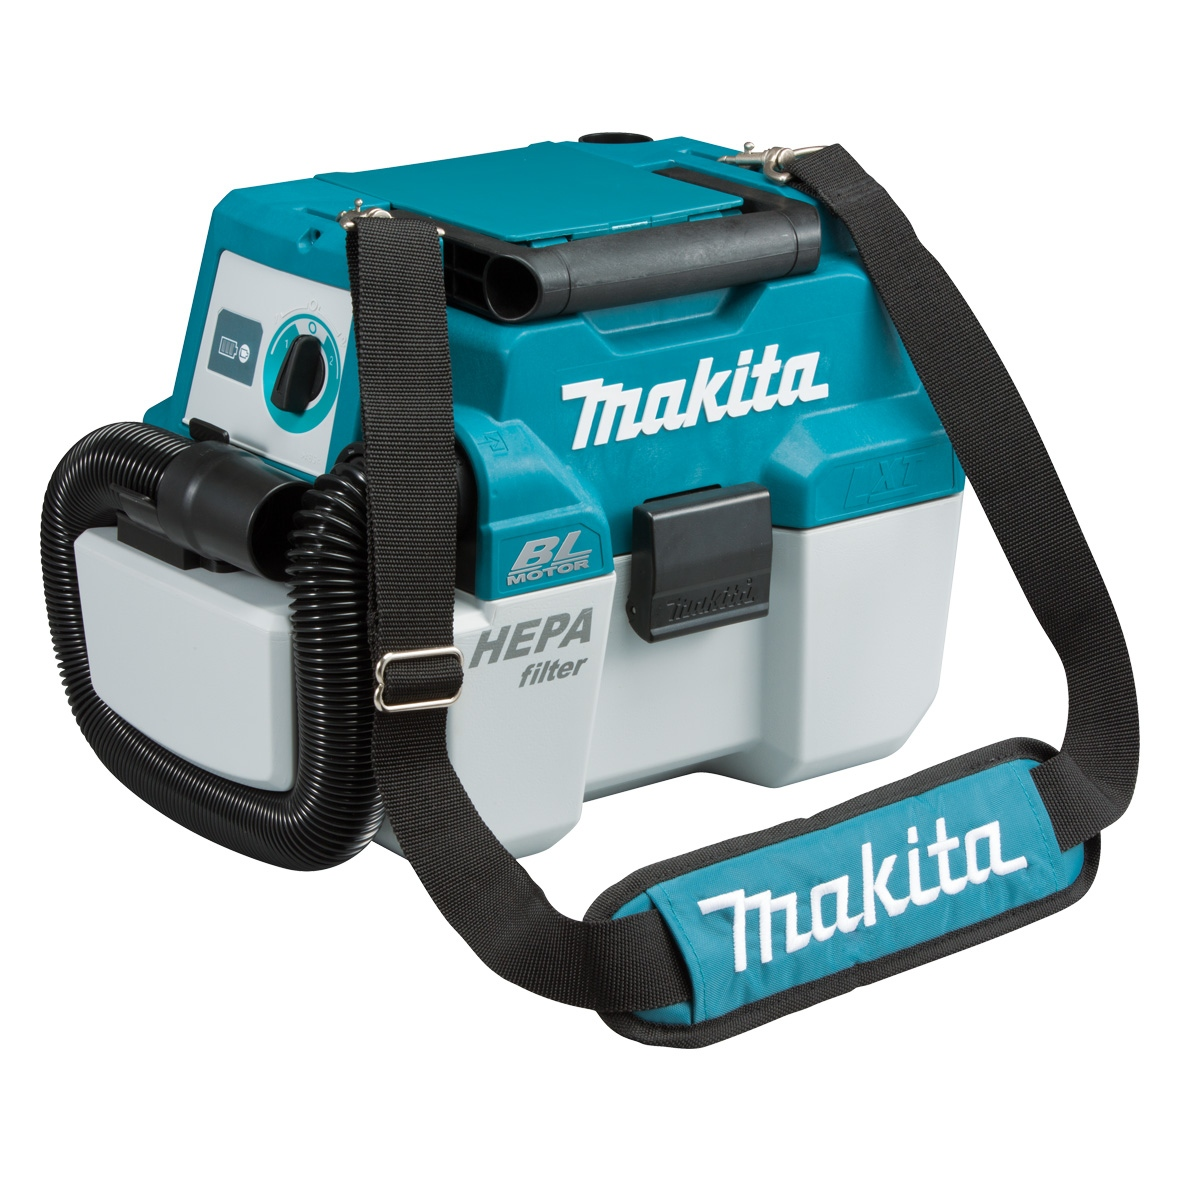 Makita Dvc750 Lzx1 Dust Extractor 2 Jpeg